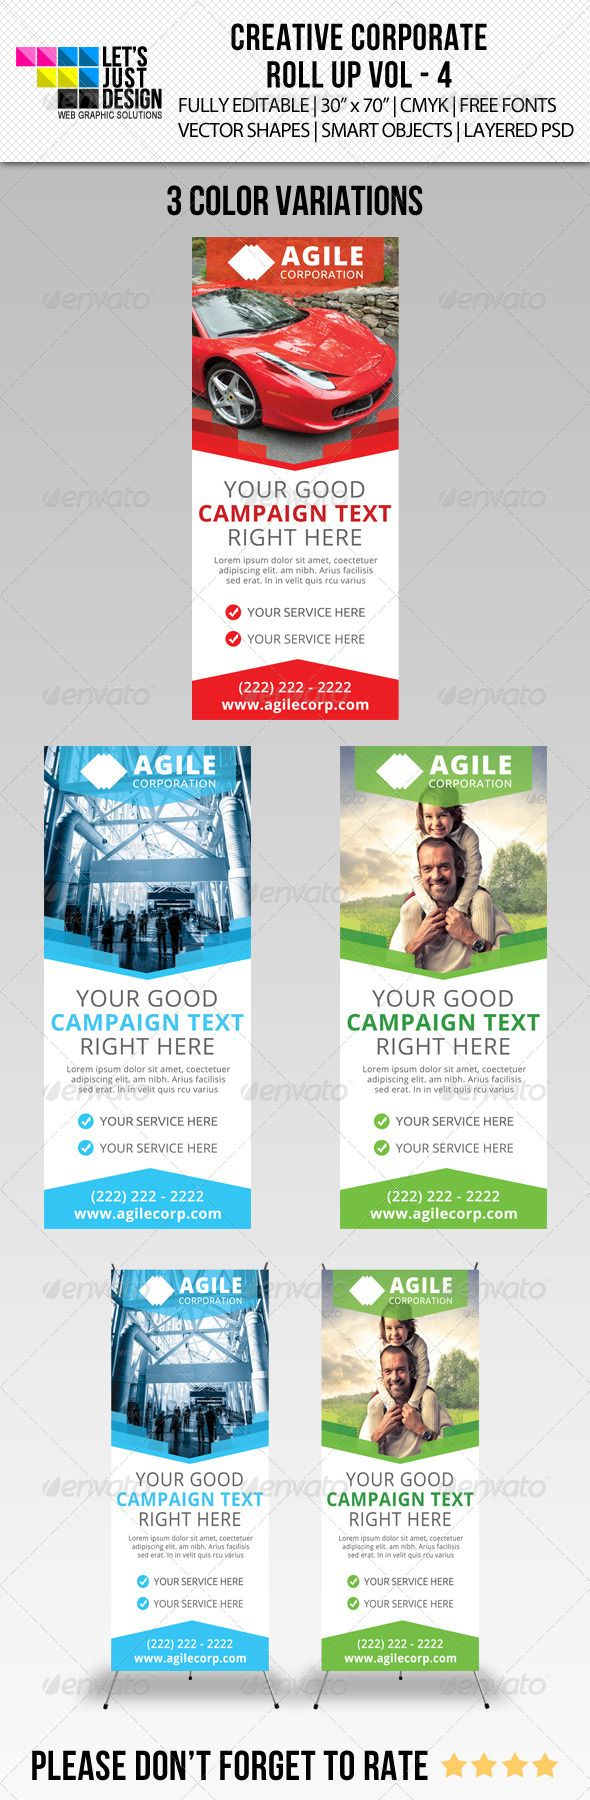 """Corporate Roll-Up Banner Vol 4 #GraphicRiver Corporate Roll-Up Banner Vol 4 Features: 3 Layered PSD. All Vectors – Fully Editable Files 30"""" x 70"""" + (1.00 Inch bleed.) 150 DPI CMYK Colors. Print Ready Files. Free Fonts Used ( Fonts info available in Help file.) Smart Objects Editing Instructions Provided. Support on item Provided. Template color can easily be changed to any desired color. Fonts: .fontsquirrel /fonts/open-sans Files Included: 3 PSD Files (3 Color Variations) 1 TXT (HELP FILE)…"""